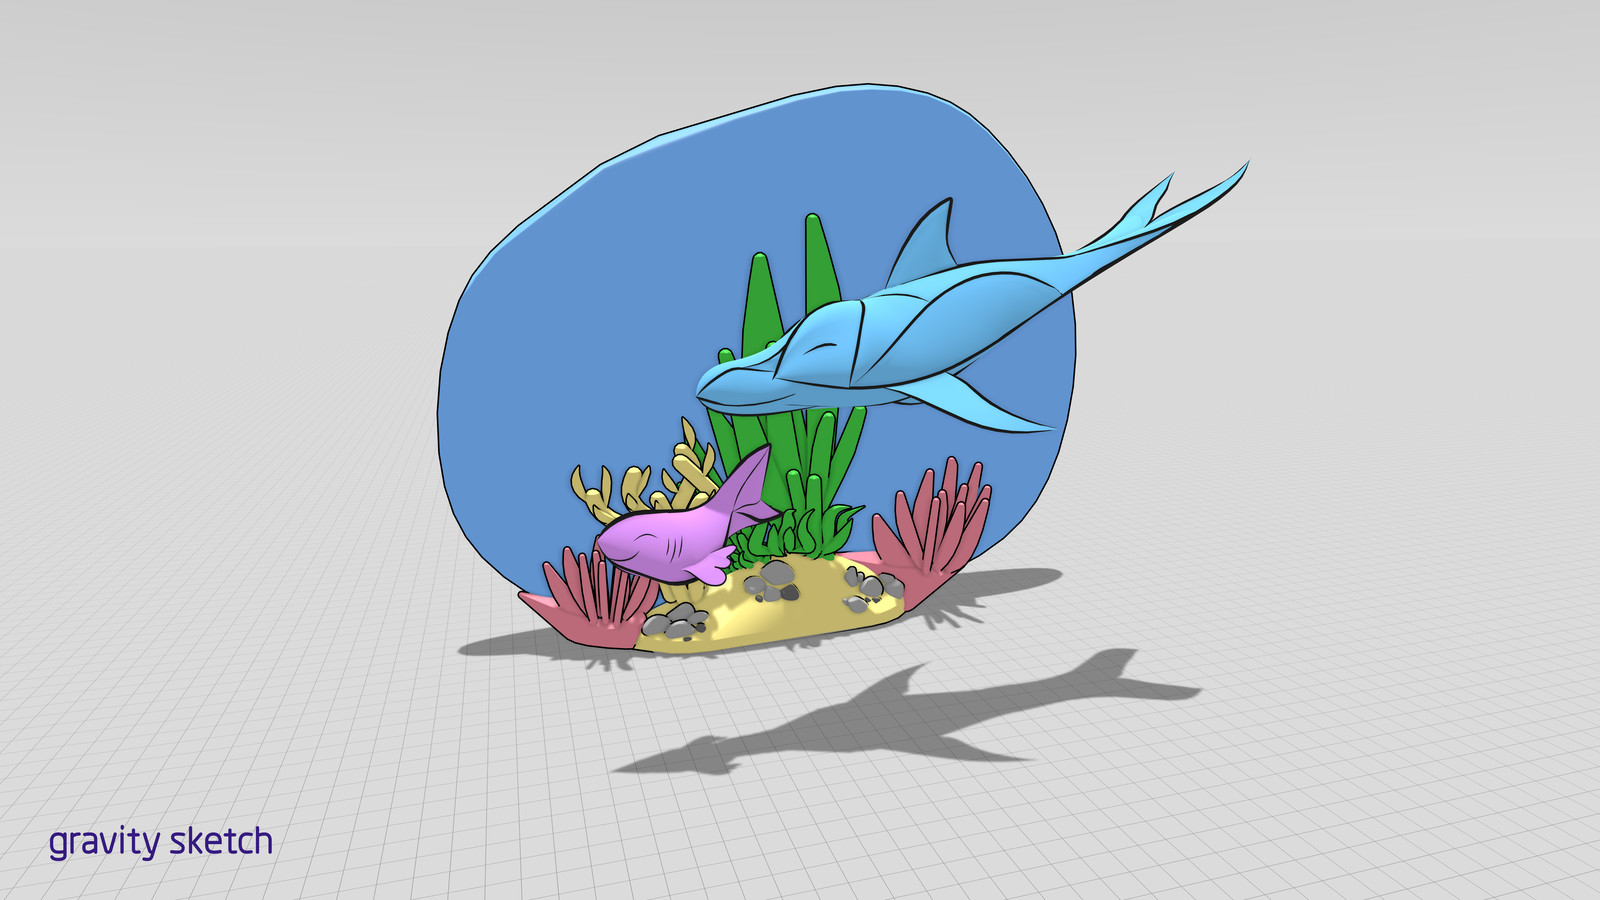 WIP (cartoon shader on plants replaced with inks to upload to sketchfab.)